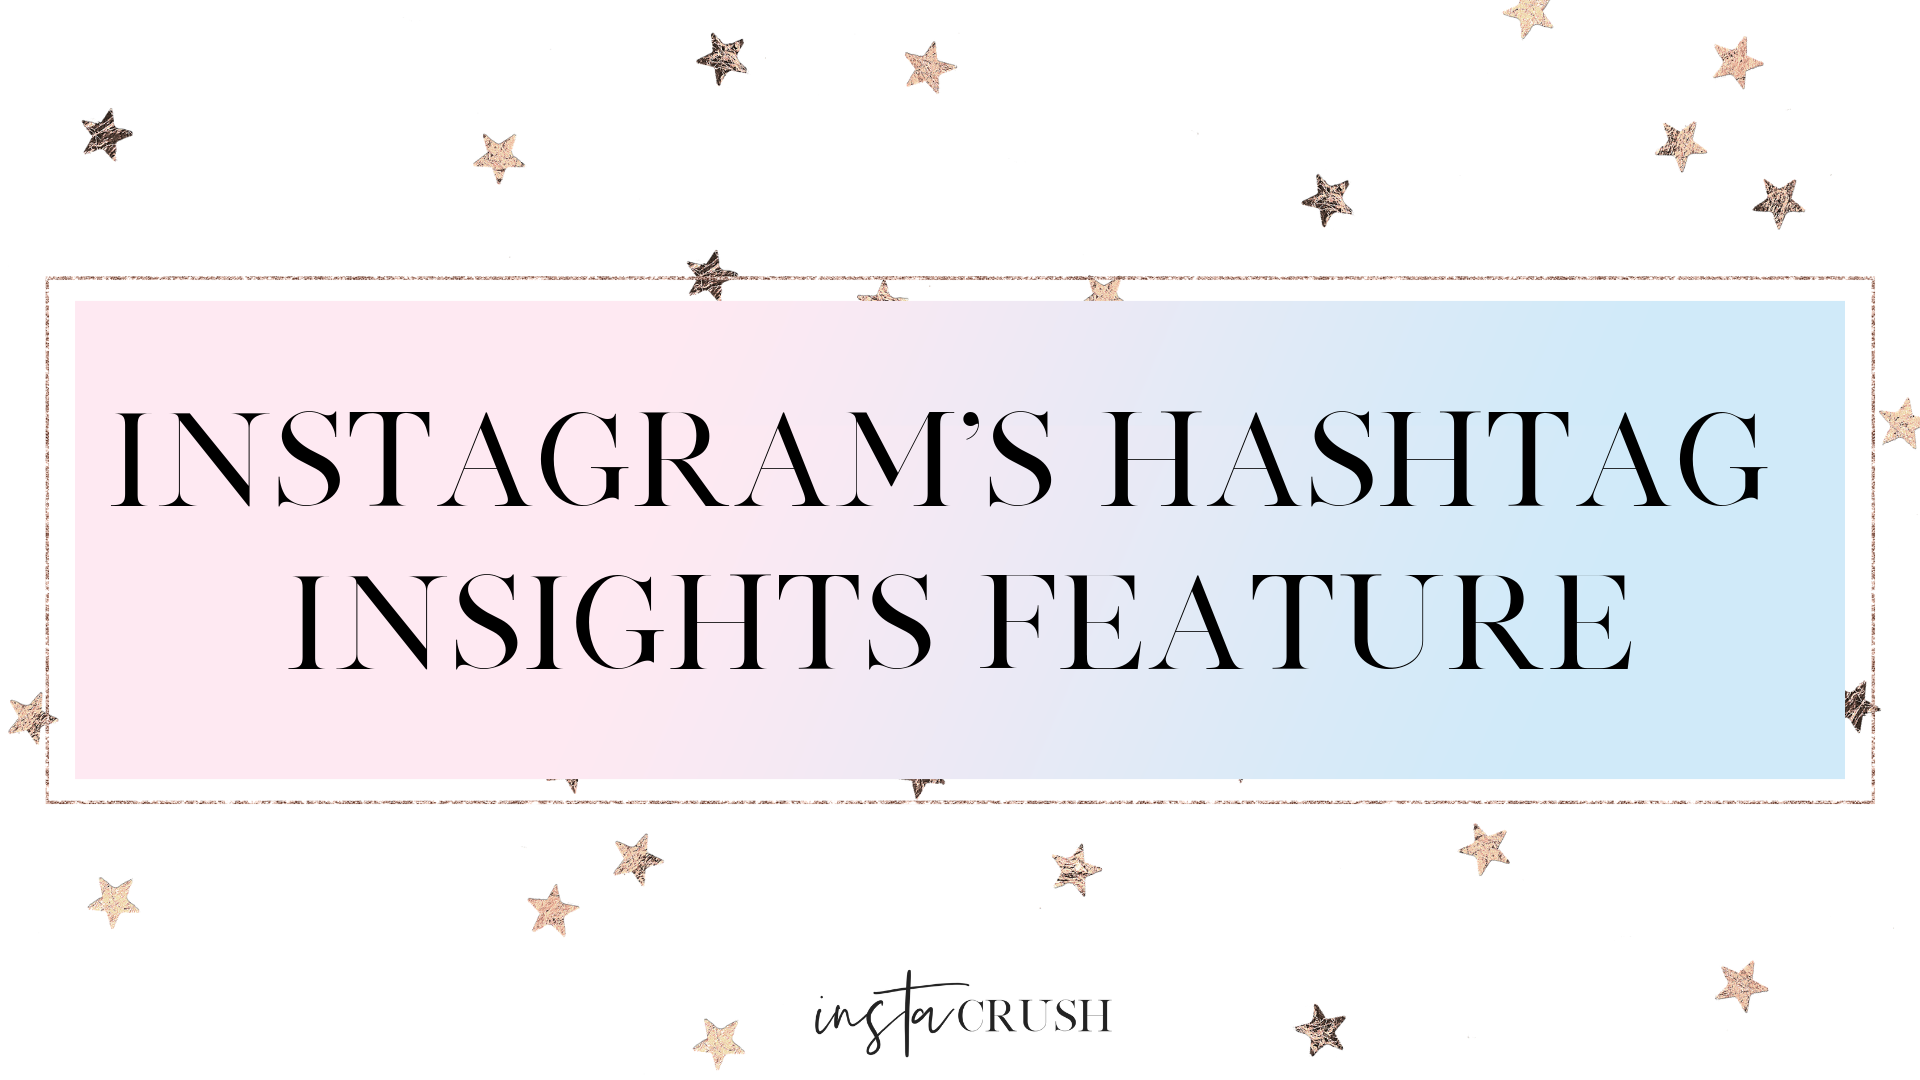 instagram's hashtag insights feature